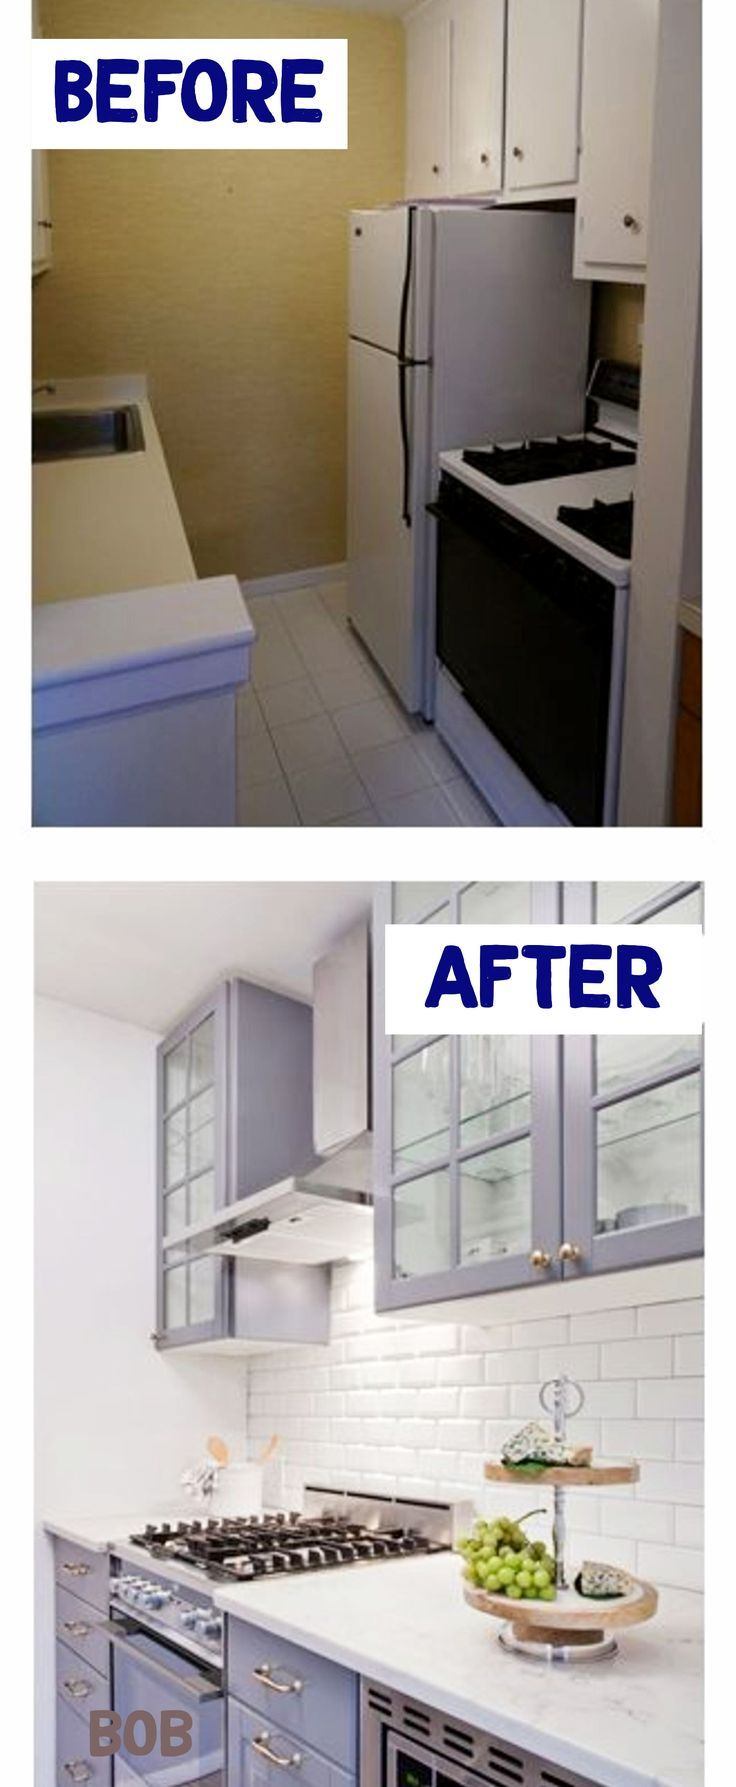 Small Kitchen Ideas On A Budget Before After Remodel Pictures Of Tiny Kitchens Clever Diy Apartment Redesign